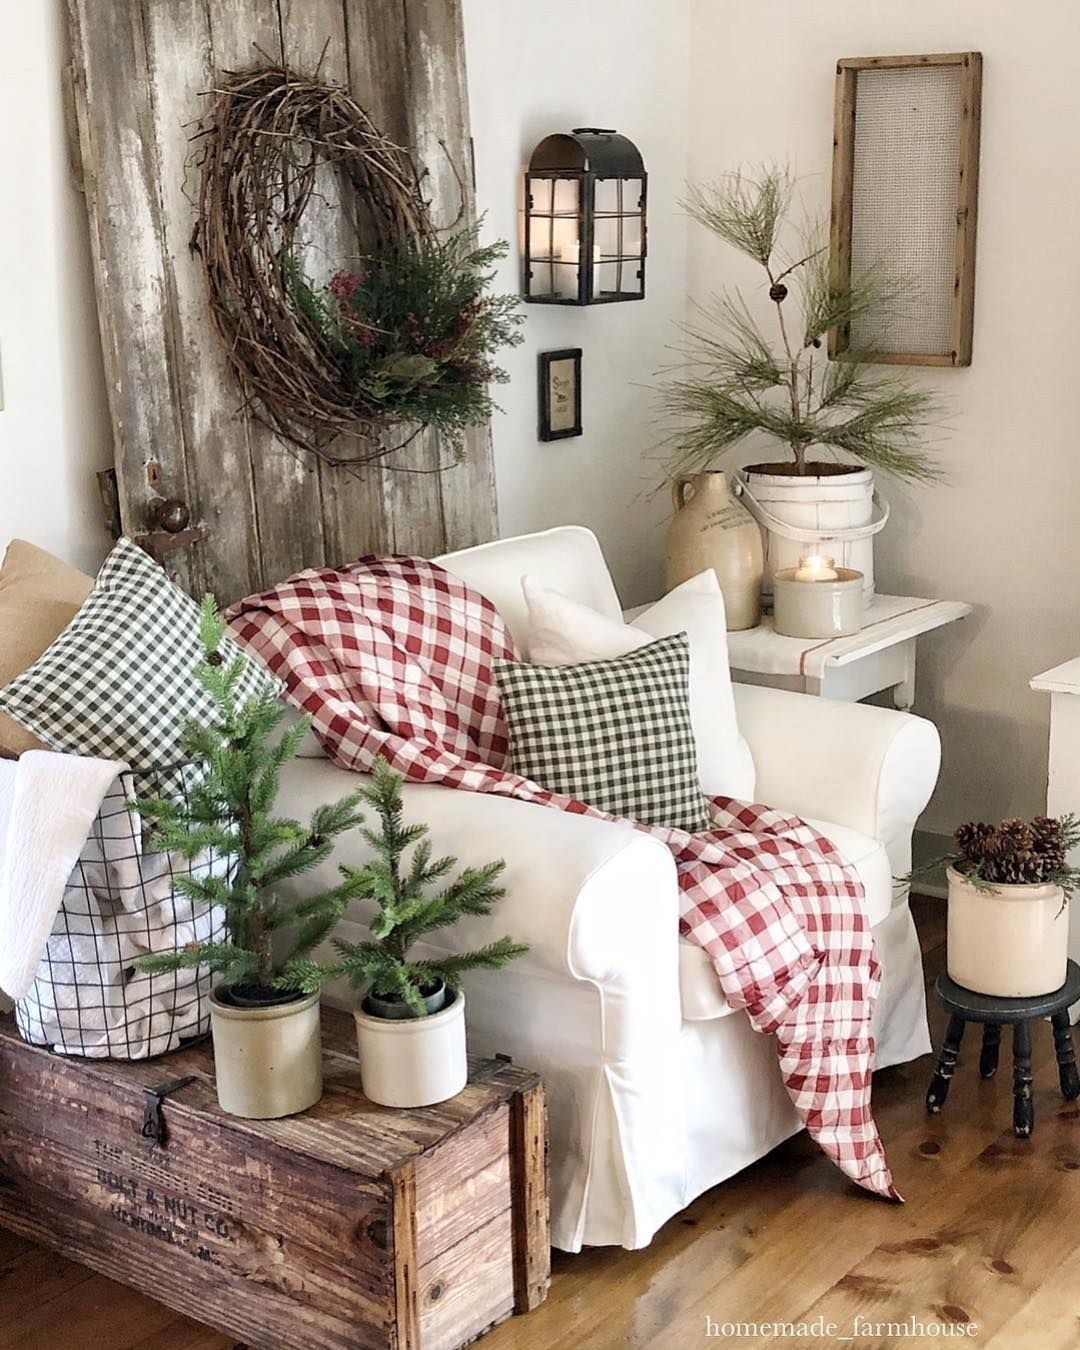 """Pleasing Cozy Country Living Room Decor Ideas On Lovely Lisa👩🏼🌾 On Instagram """"it S A Snuggle Up Sunday Temps On Cozy Country Living Room Decor Ideas"""